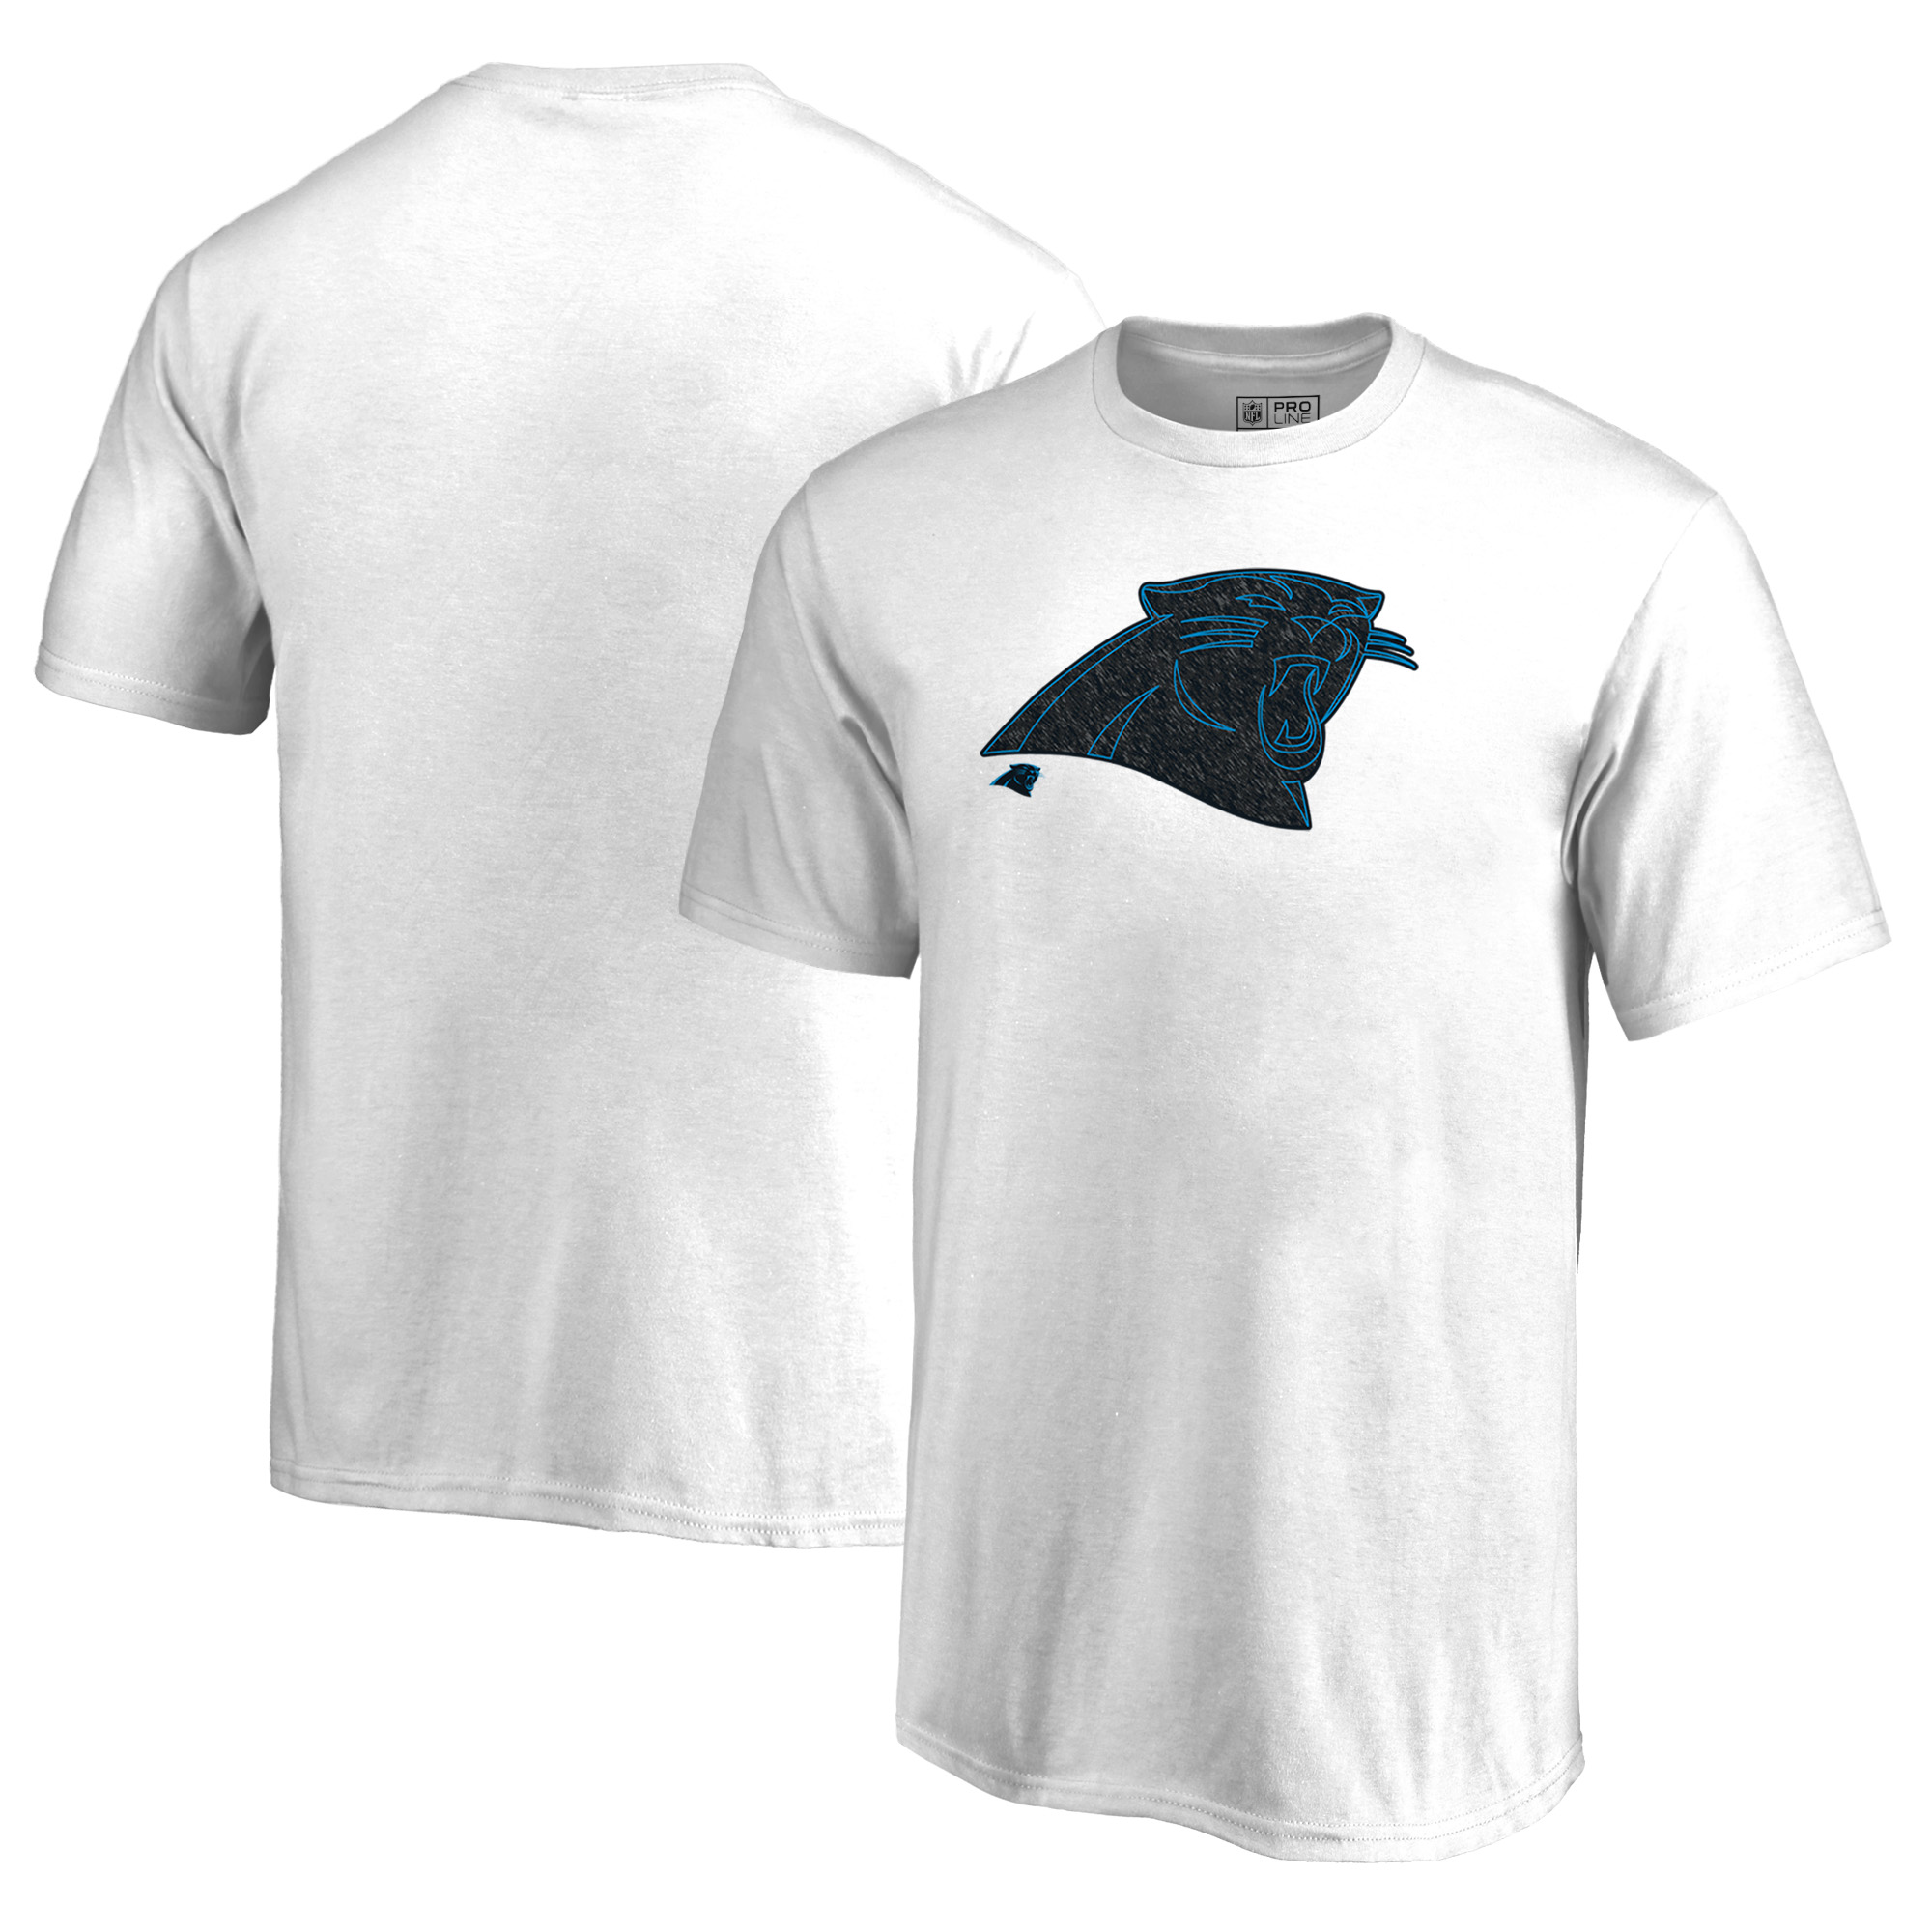 Carolina Panthers NFL Pro Line by Fanatics Branded Youth Training Camp Hookup T-Shirt - White